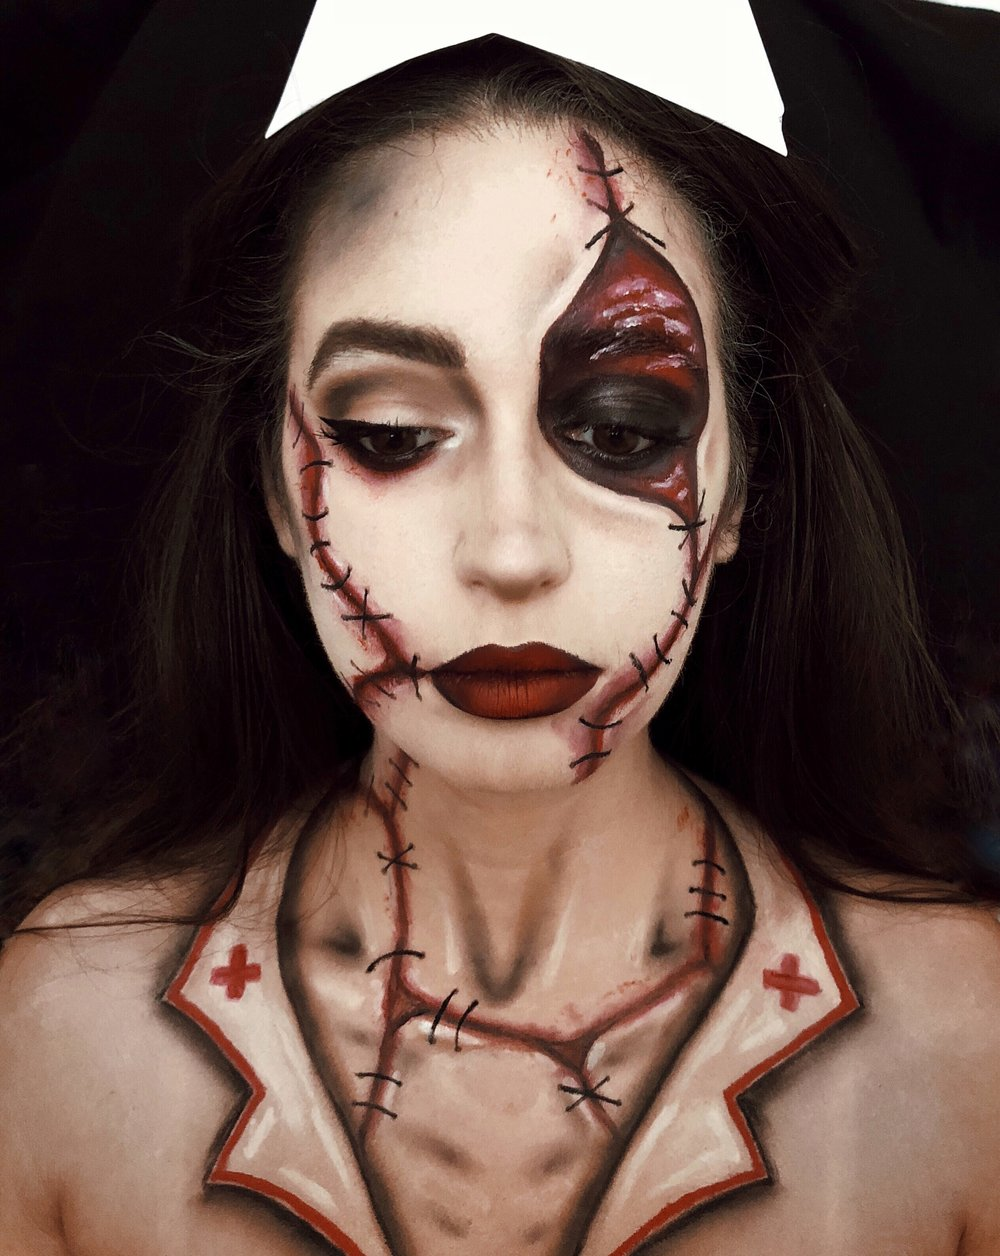 halloween-makeup-nurse-gore-stitches-bodypaint